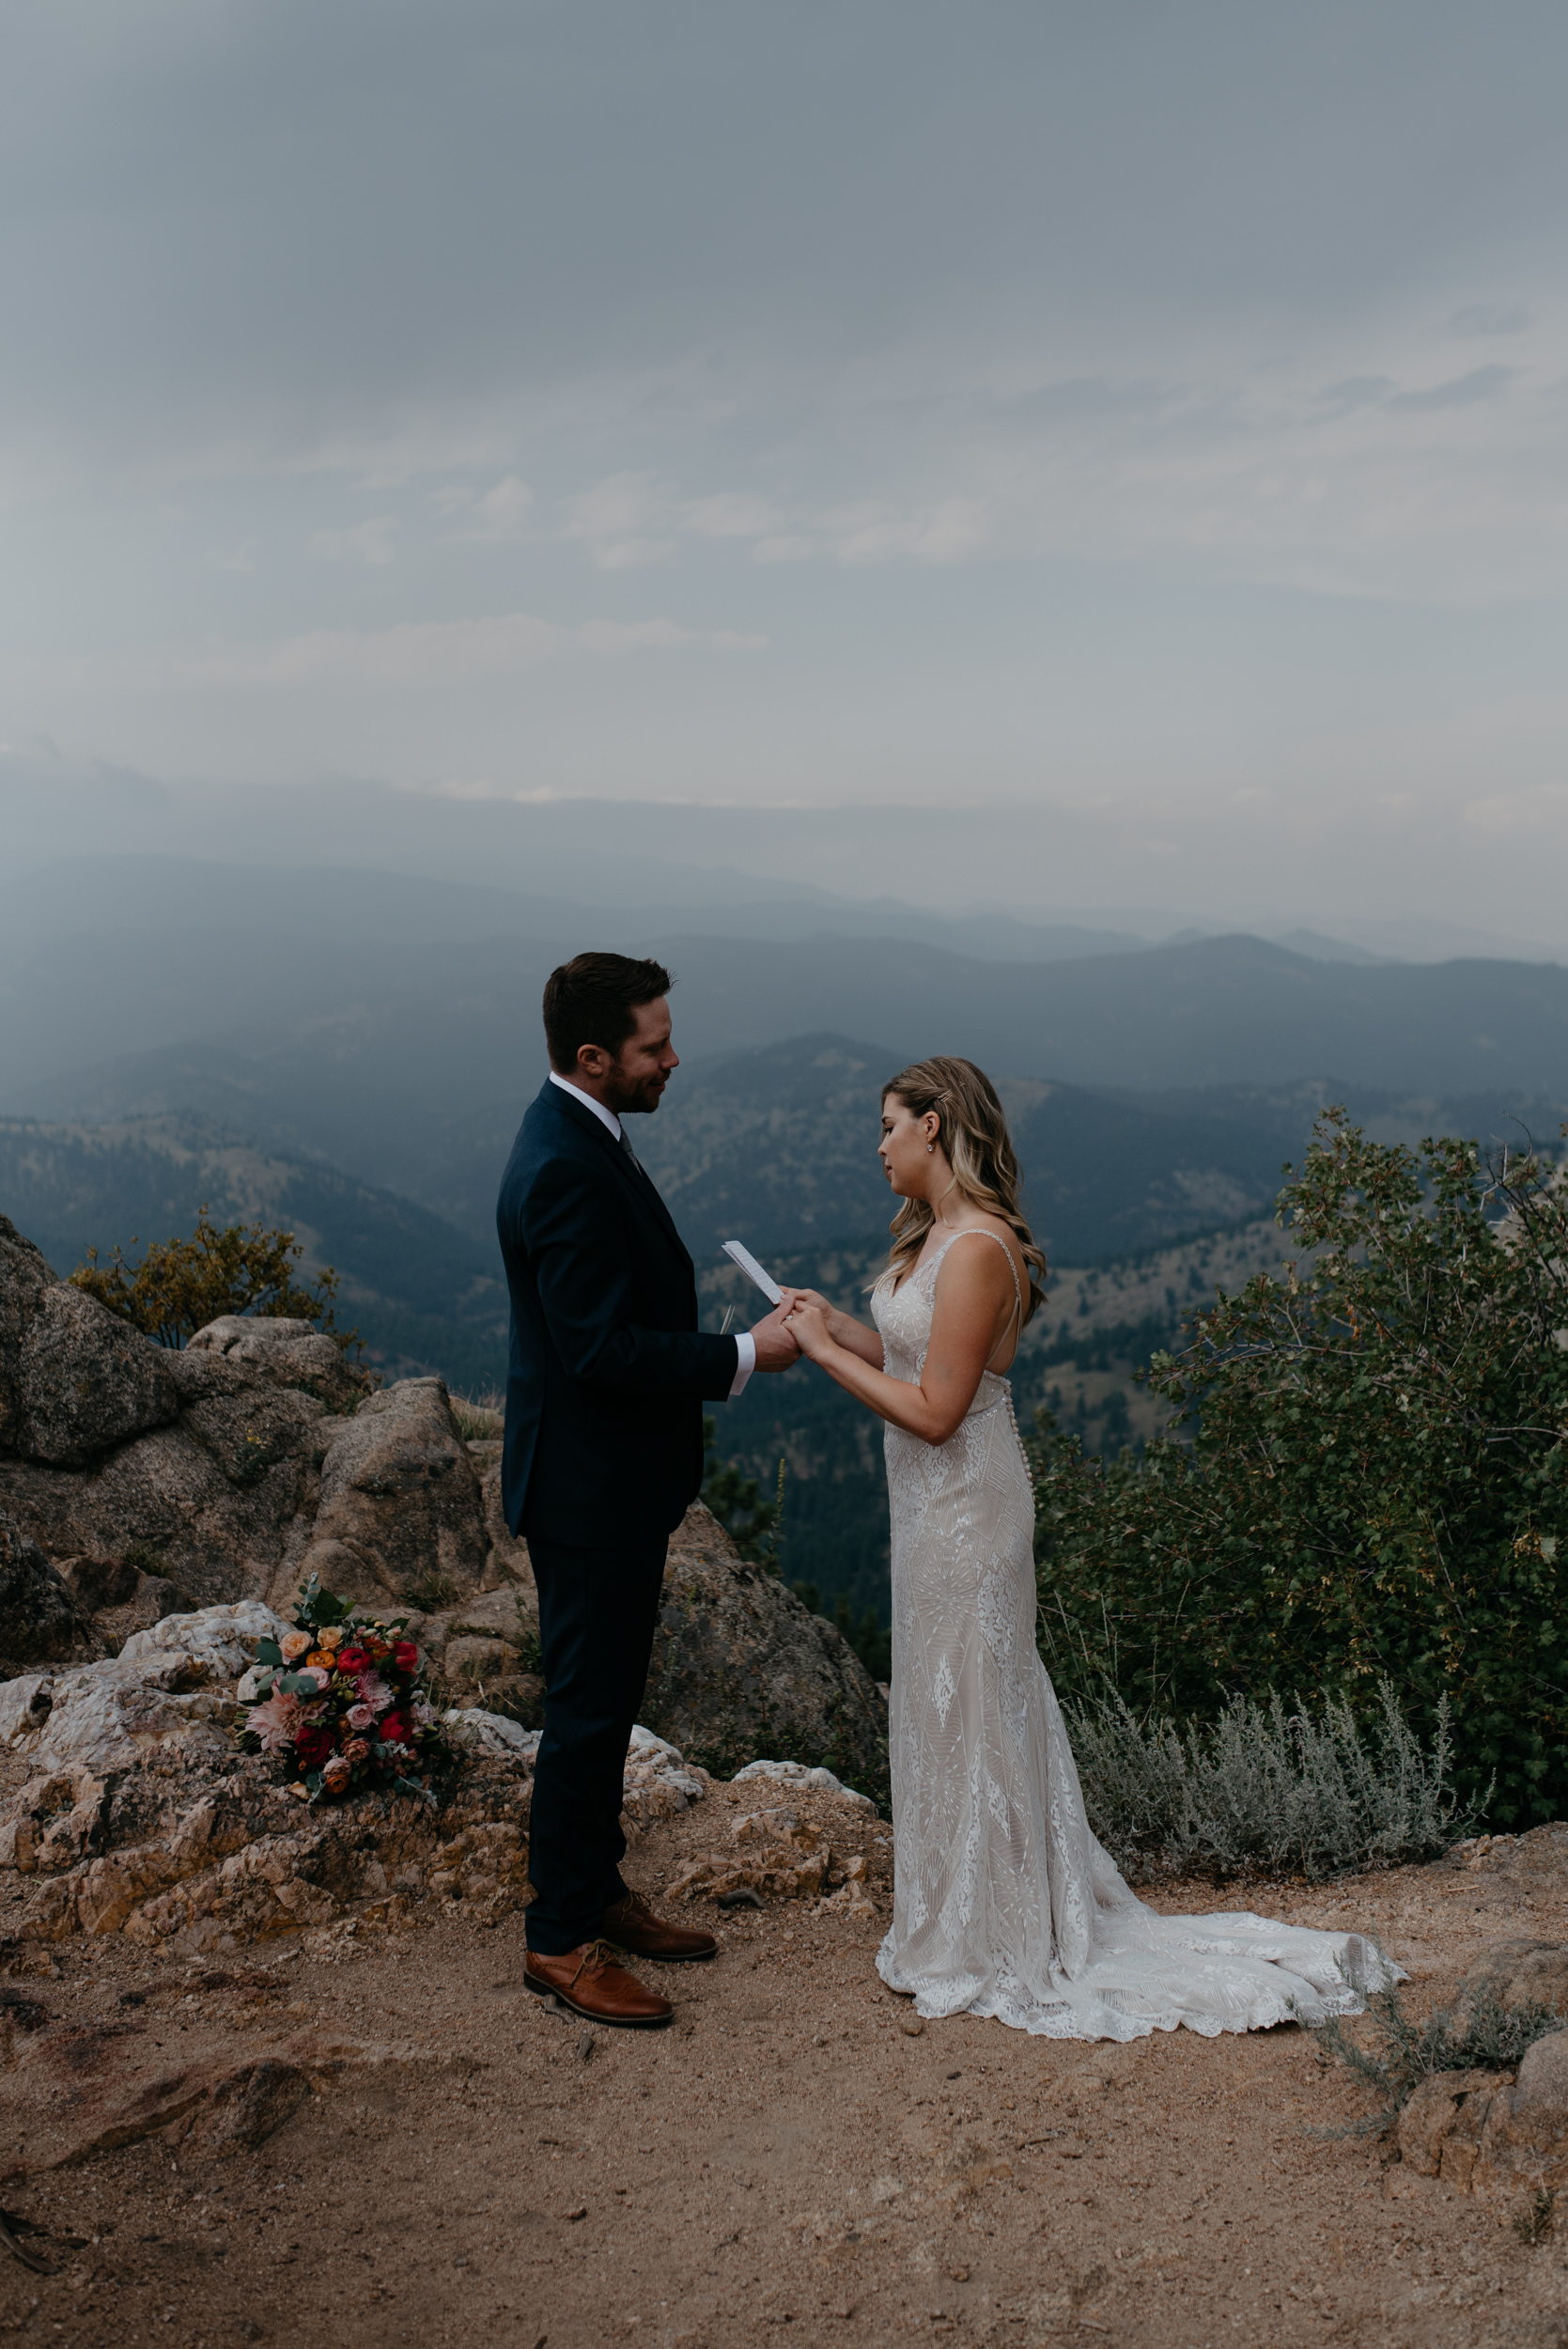 Bride and groom exchanging vows at a mountaintop elopement in Boulder, Colorado. Denver wedding and elopement photographer for adventurous couples.